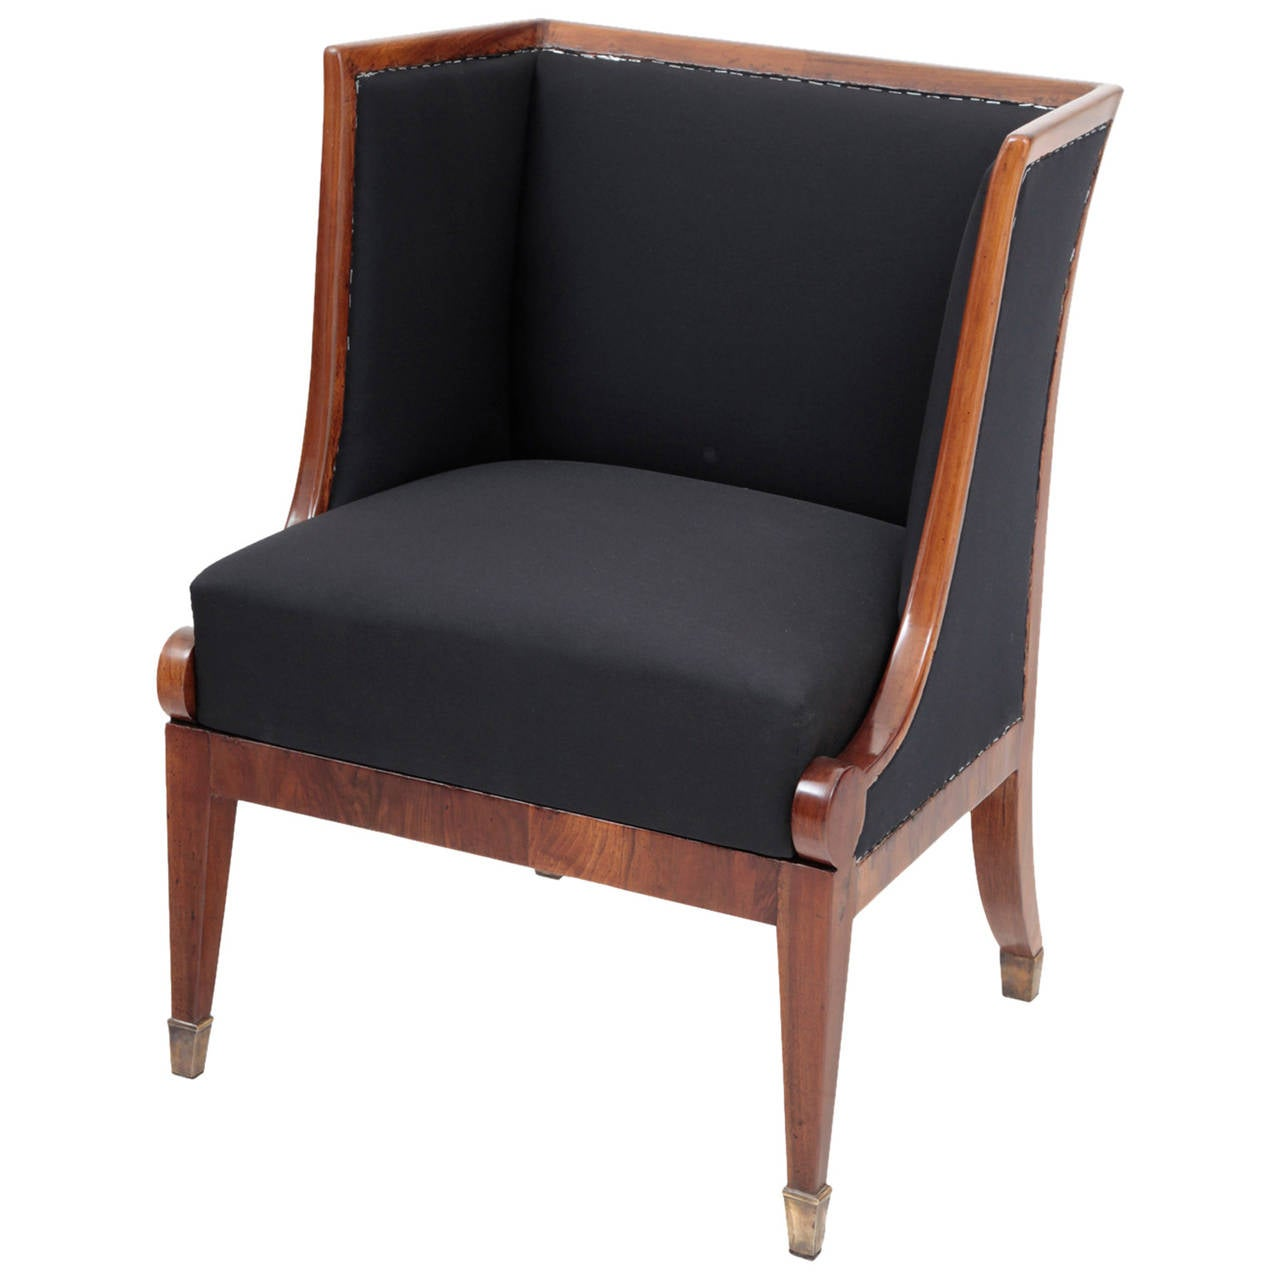 Elegant Chairs Elegant Biedermeier Chair From The 1820s For Sale At 1stdibs